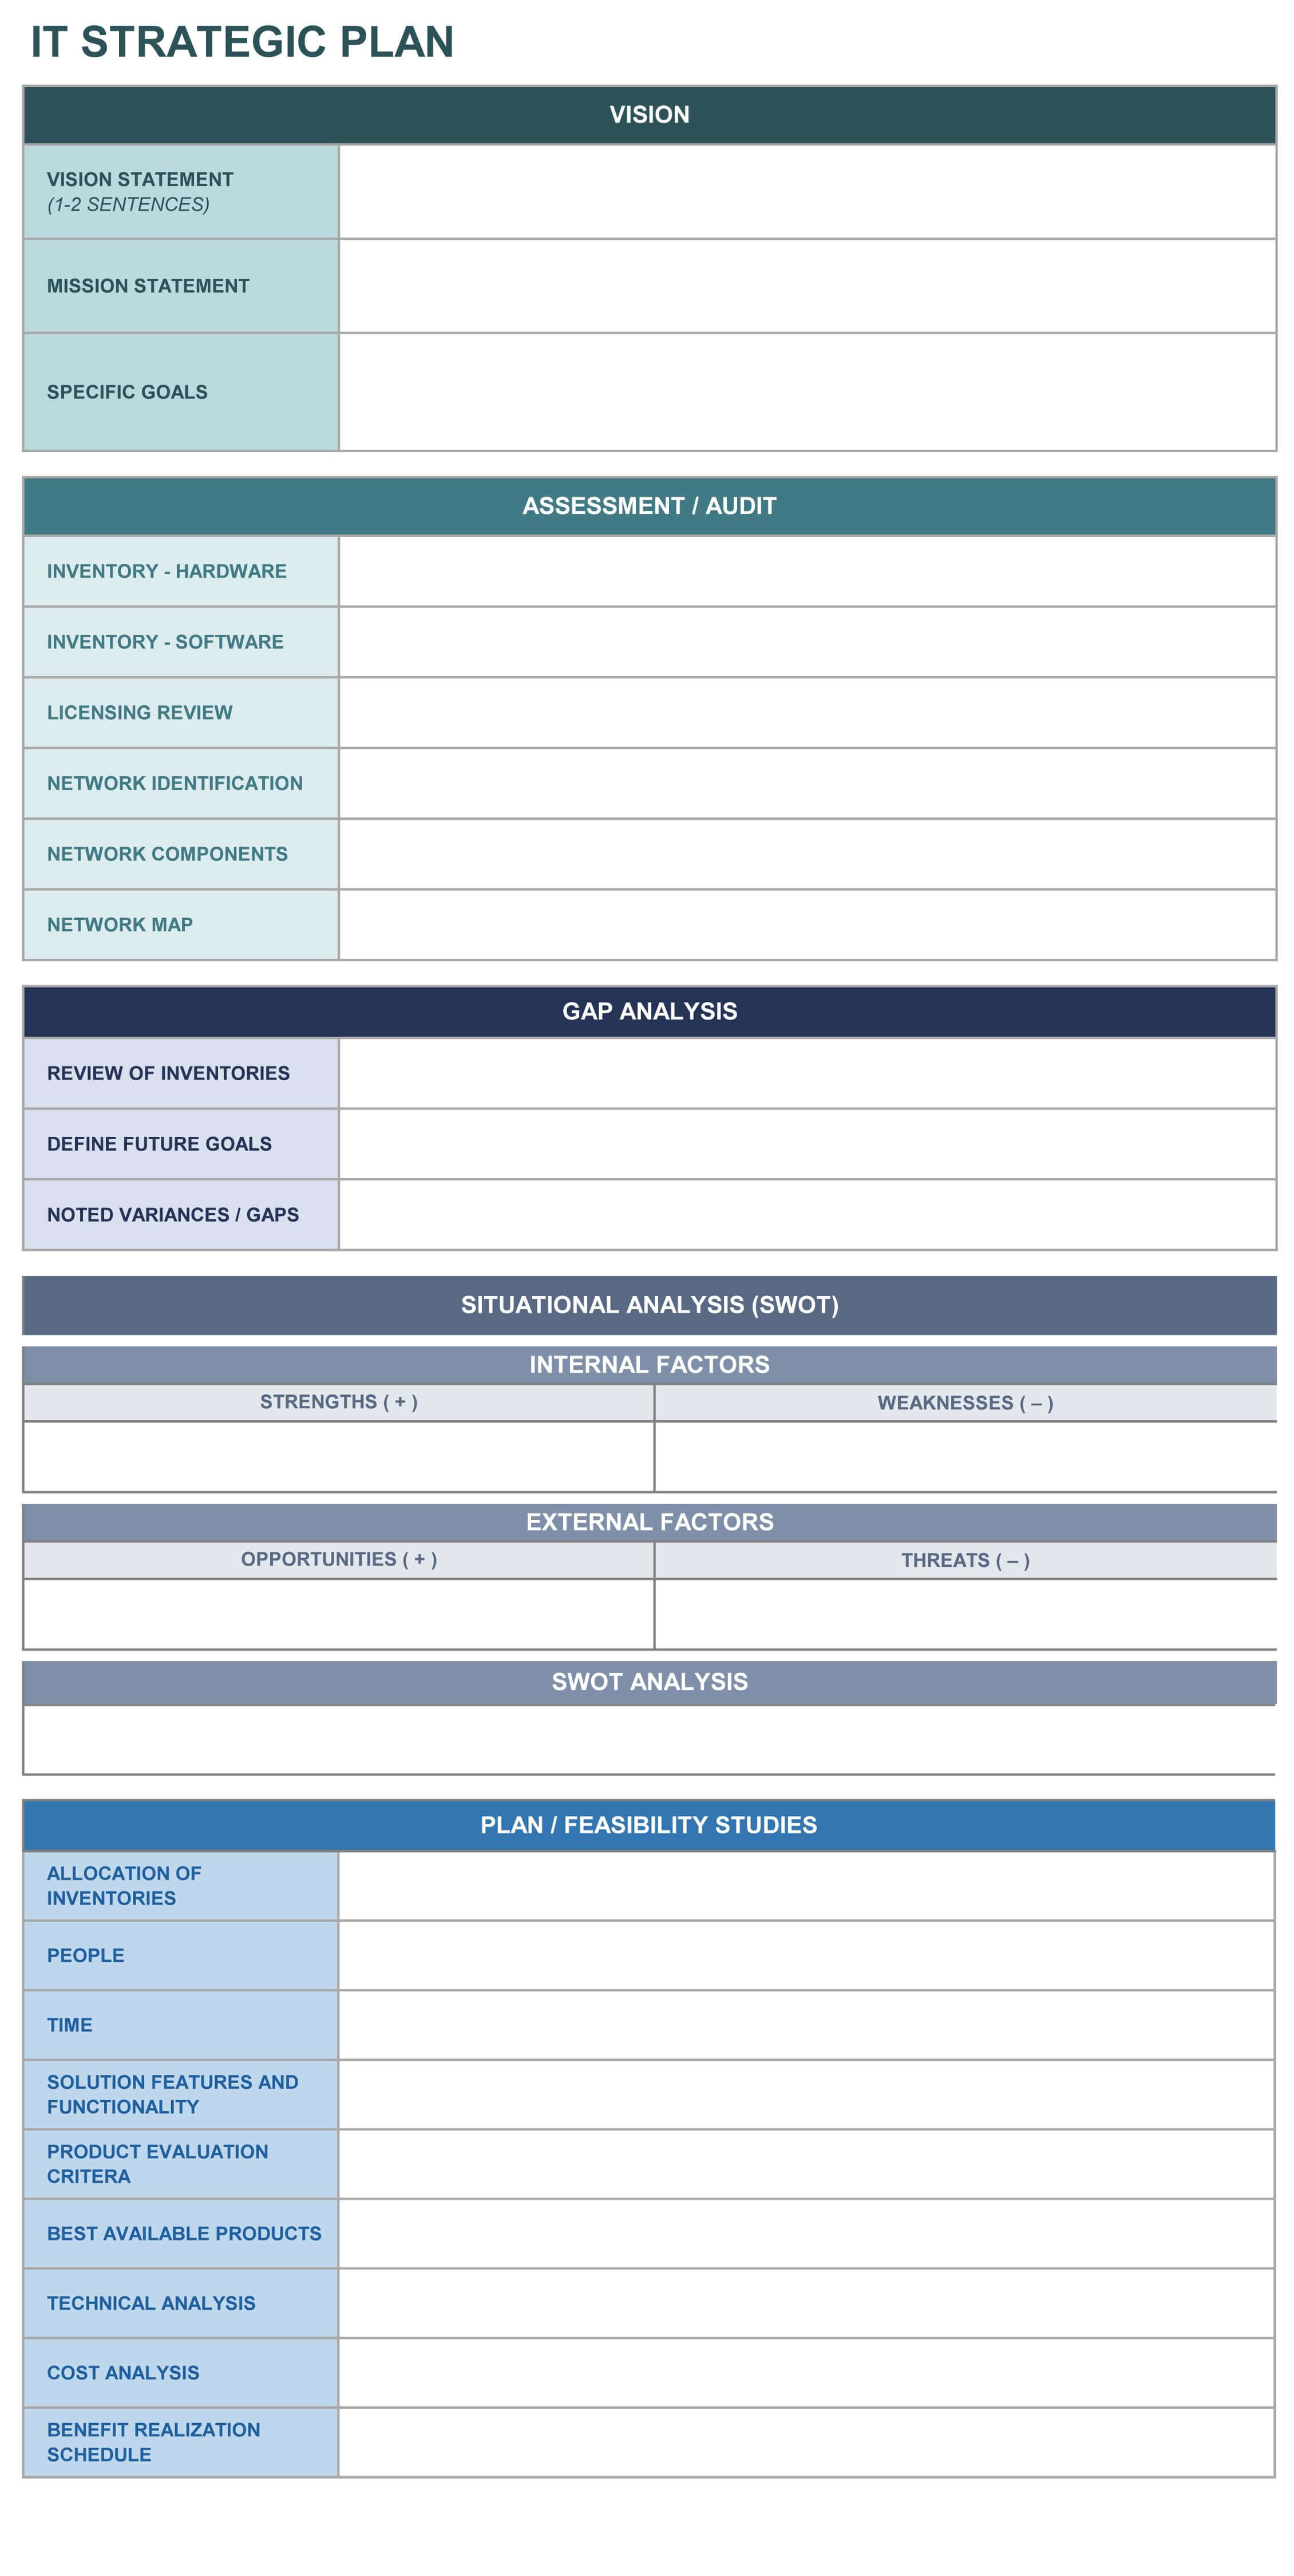 It Strategic Plan Excel Template | Strategic Planning within Gap Analysis Report Template Free